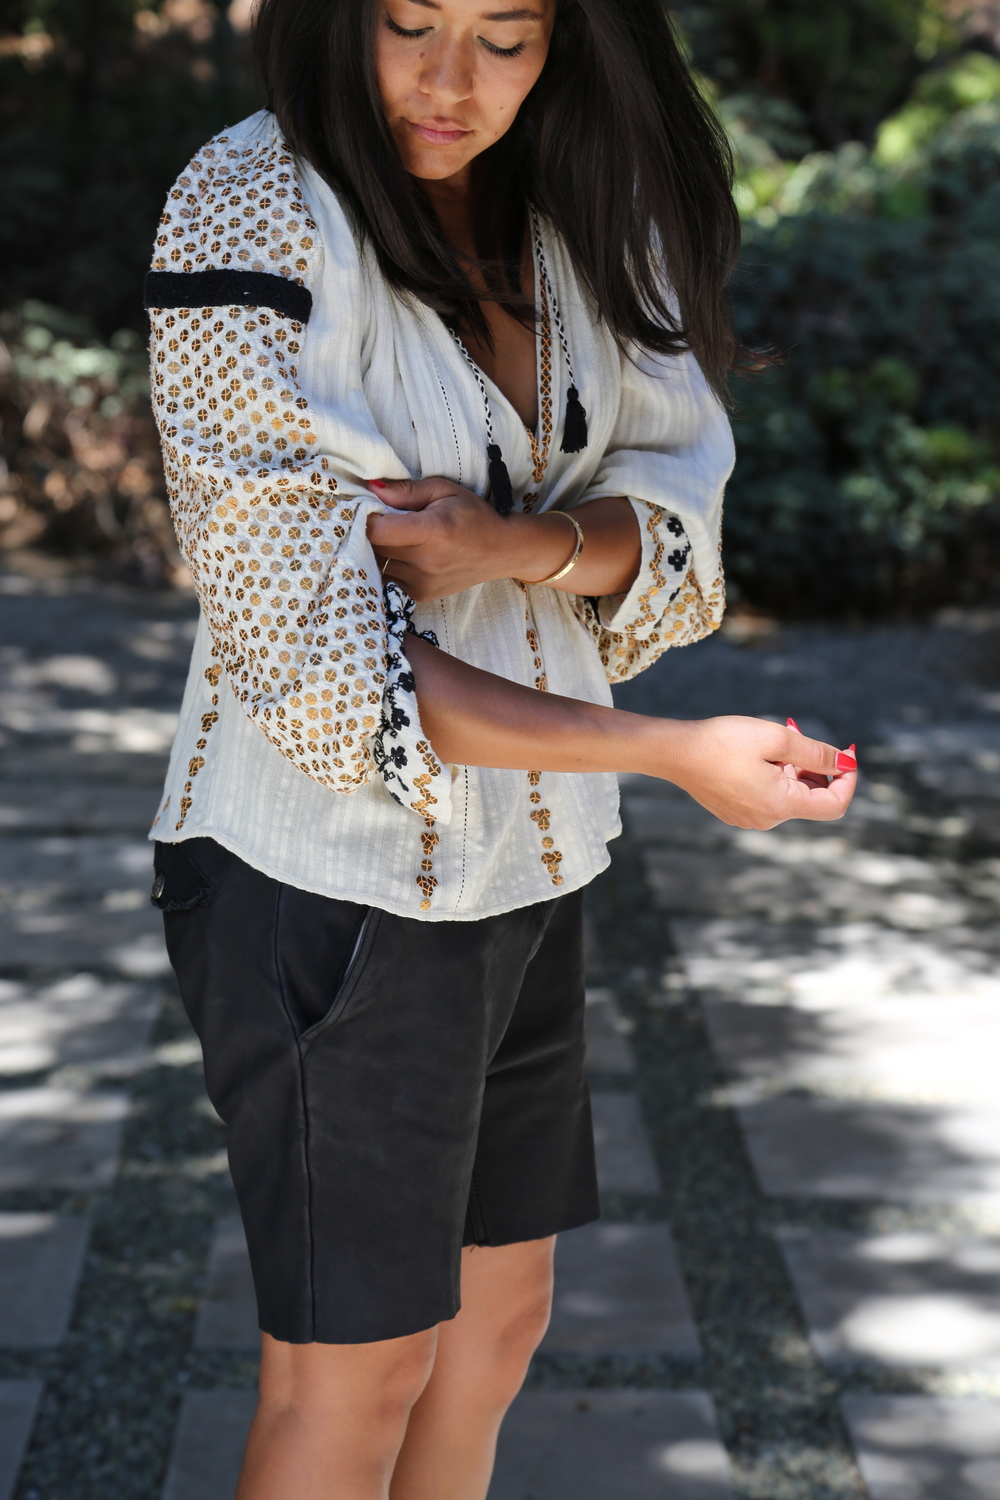 VANESSA-BELETIC-STYLE-BOHO-LOS-ANGELES.JPG